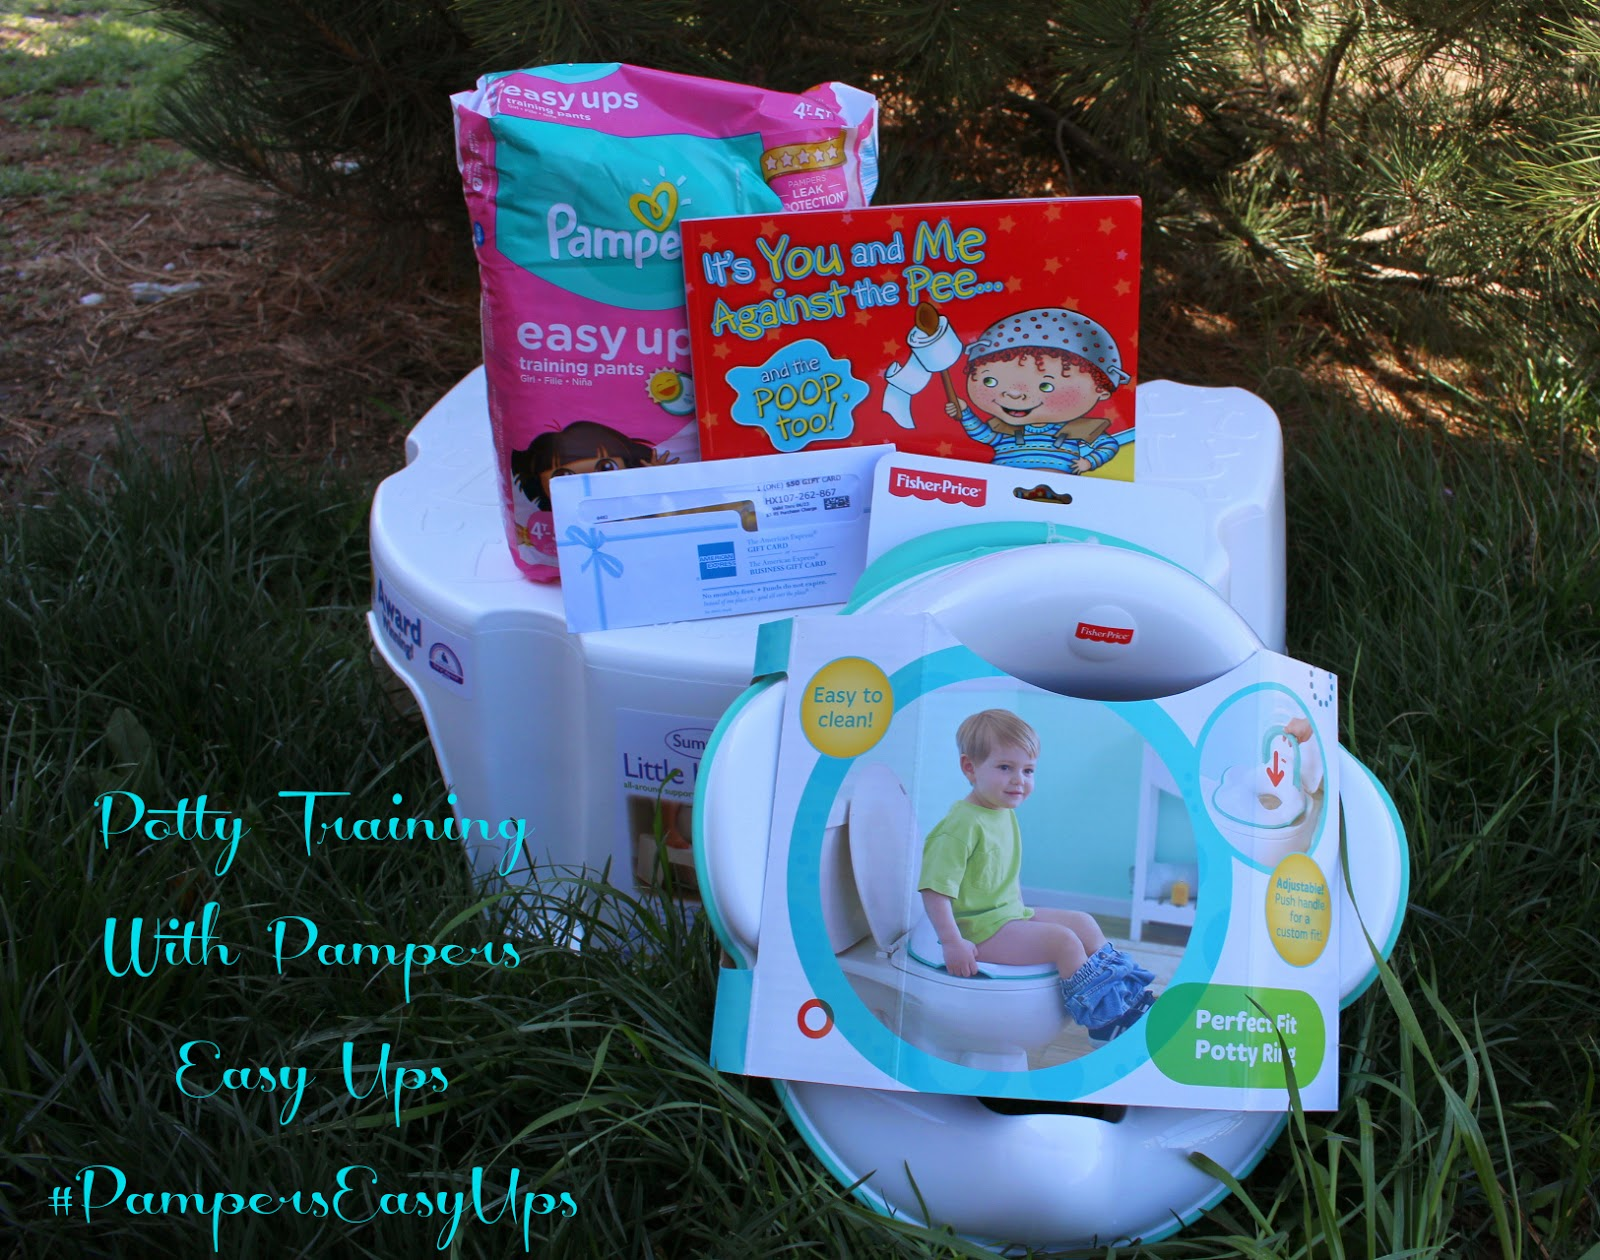 Swell Potty Training With Pampers Easy Ups Pamperseasyups Gmtry Best Dining Table And Chair Ideas Images Gmtryco